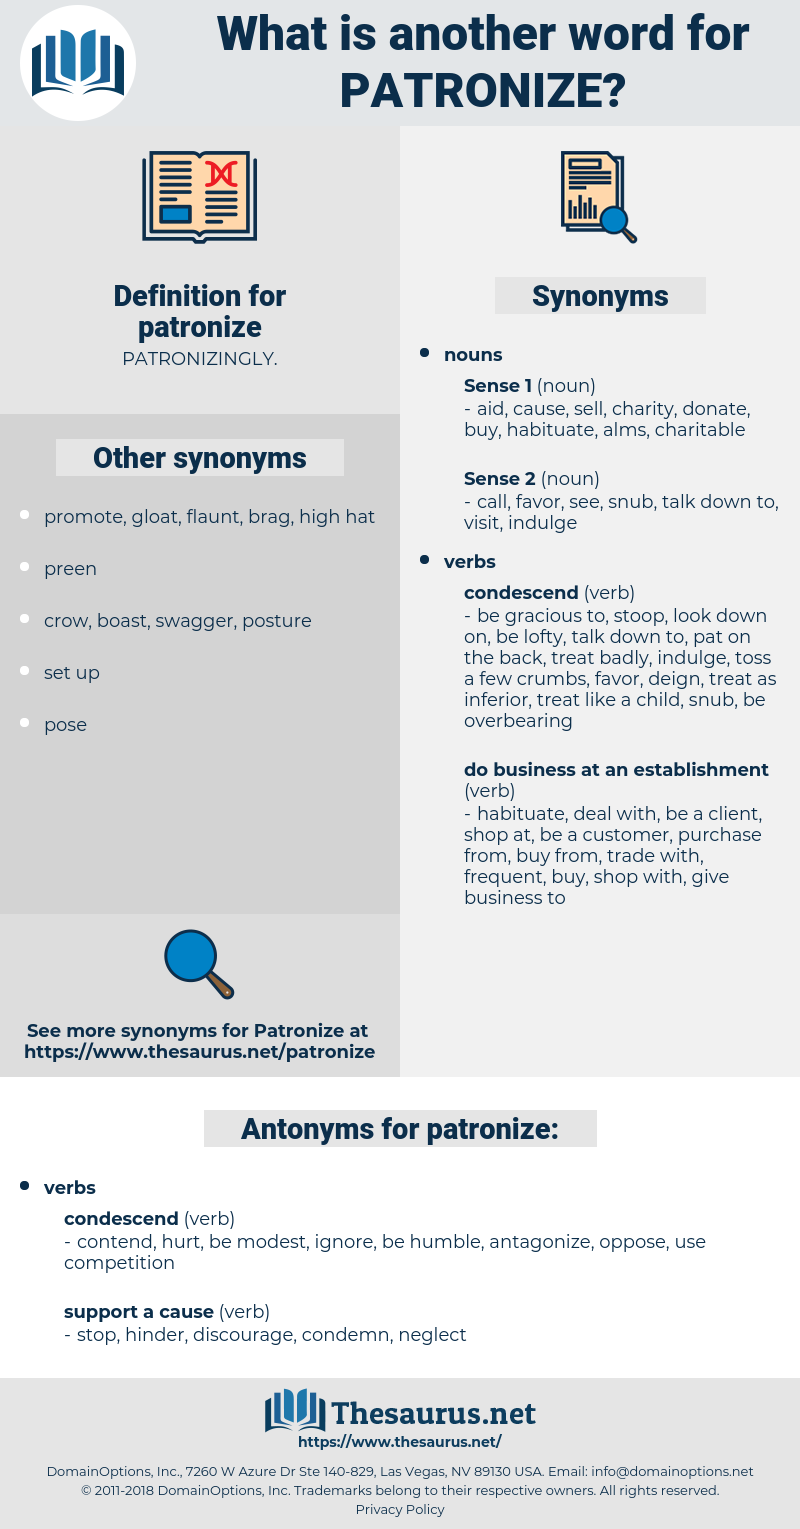 patronize, synonym patronize, another word for patronize, words like patronize, thesaurus patronize